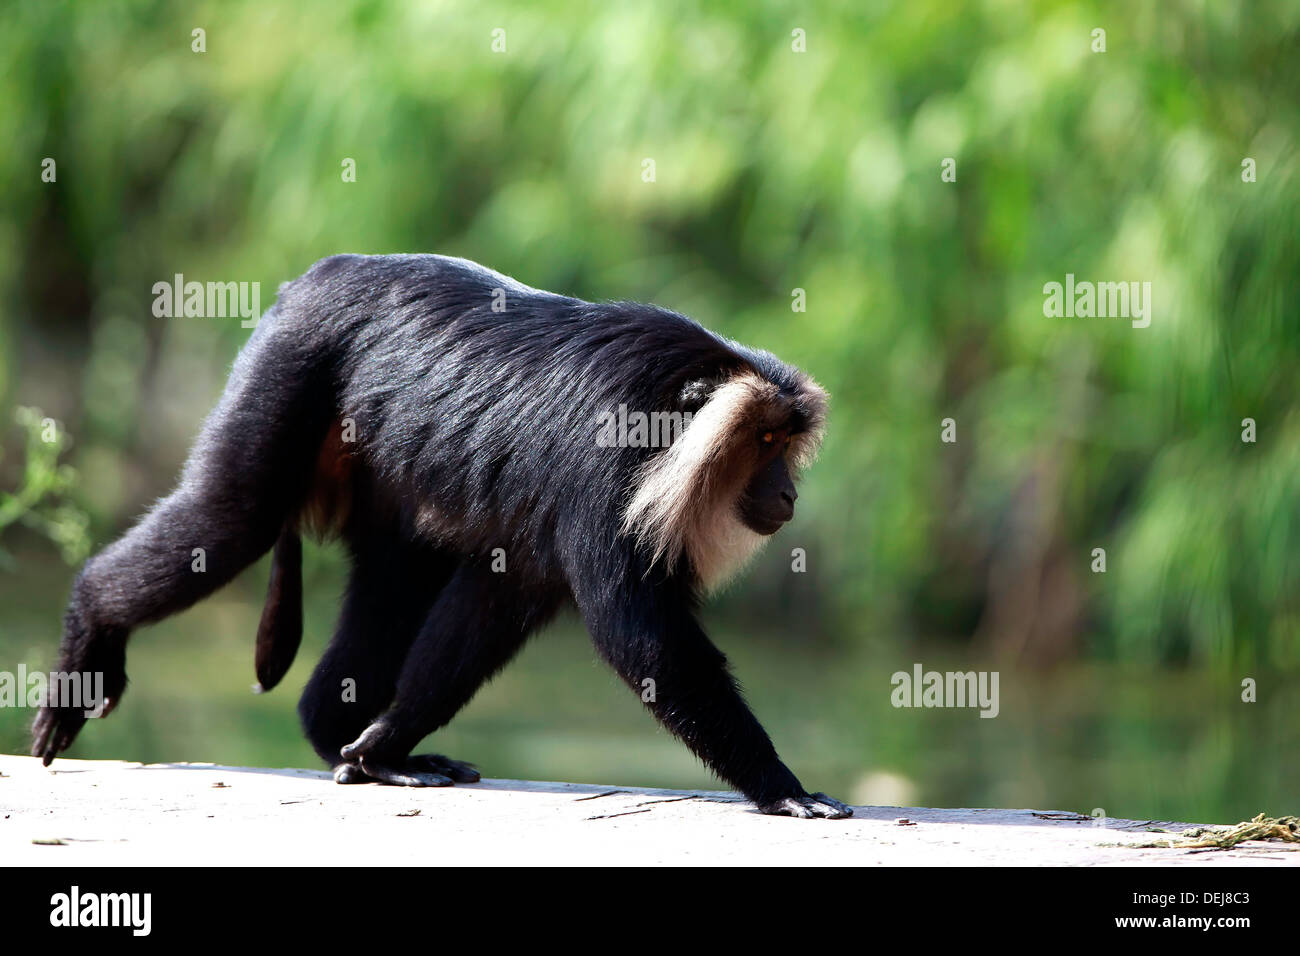 Lion-tailed macaque,Monkey,Animal in the wild,Mammal,Animal,Delhi National park,India Stock Photo